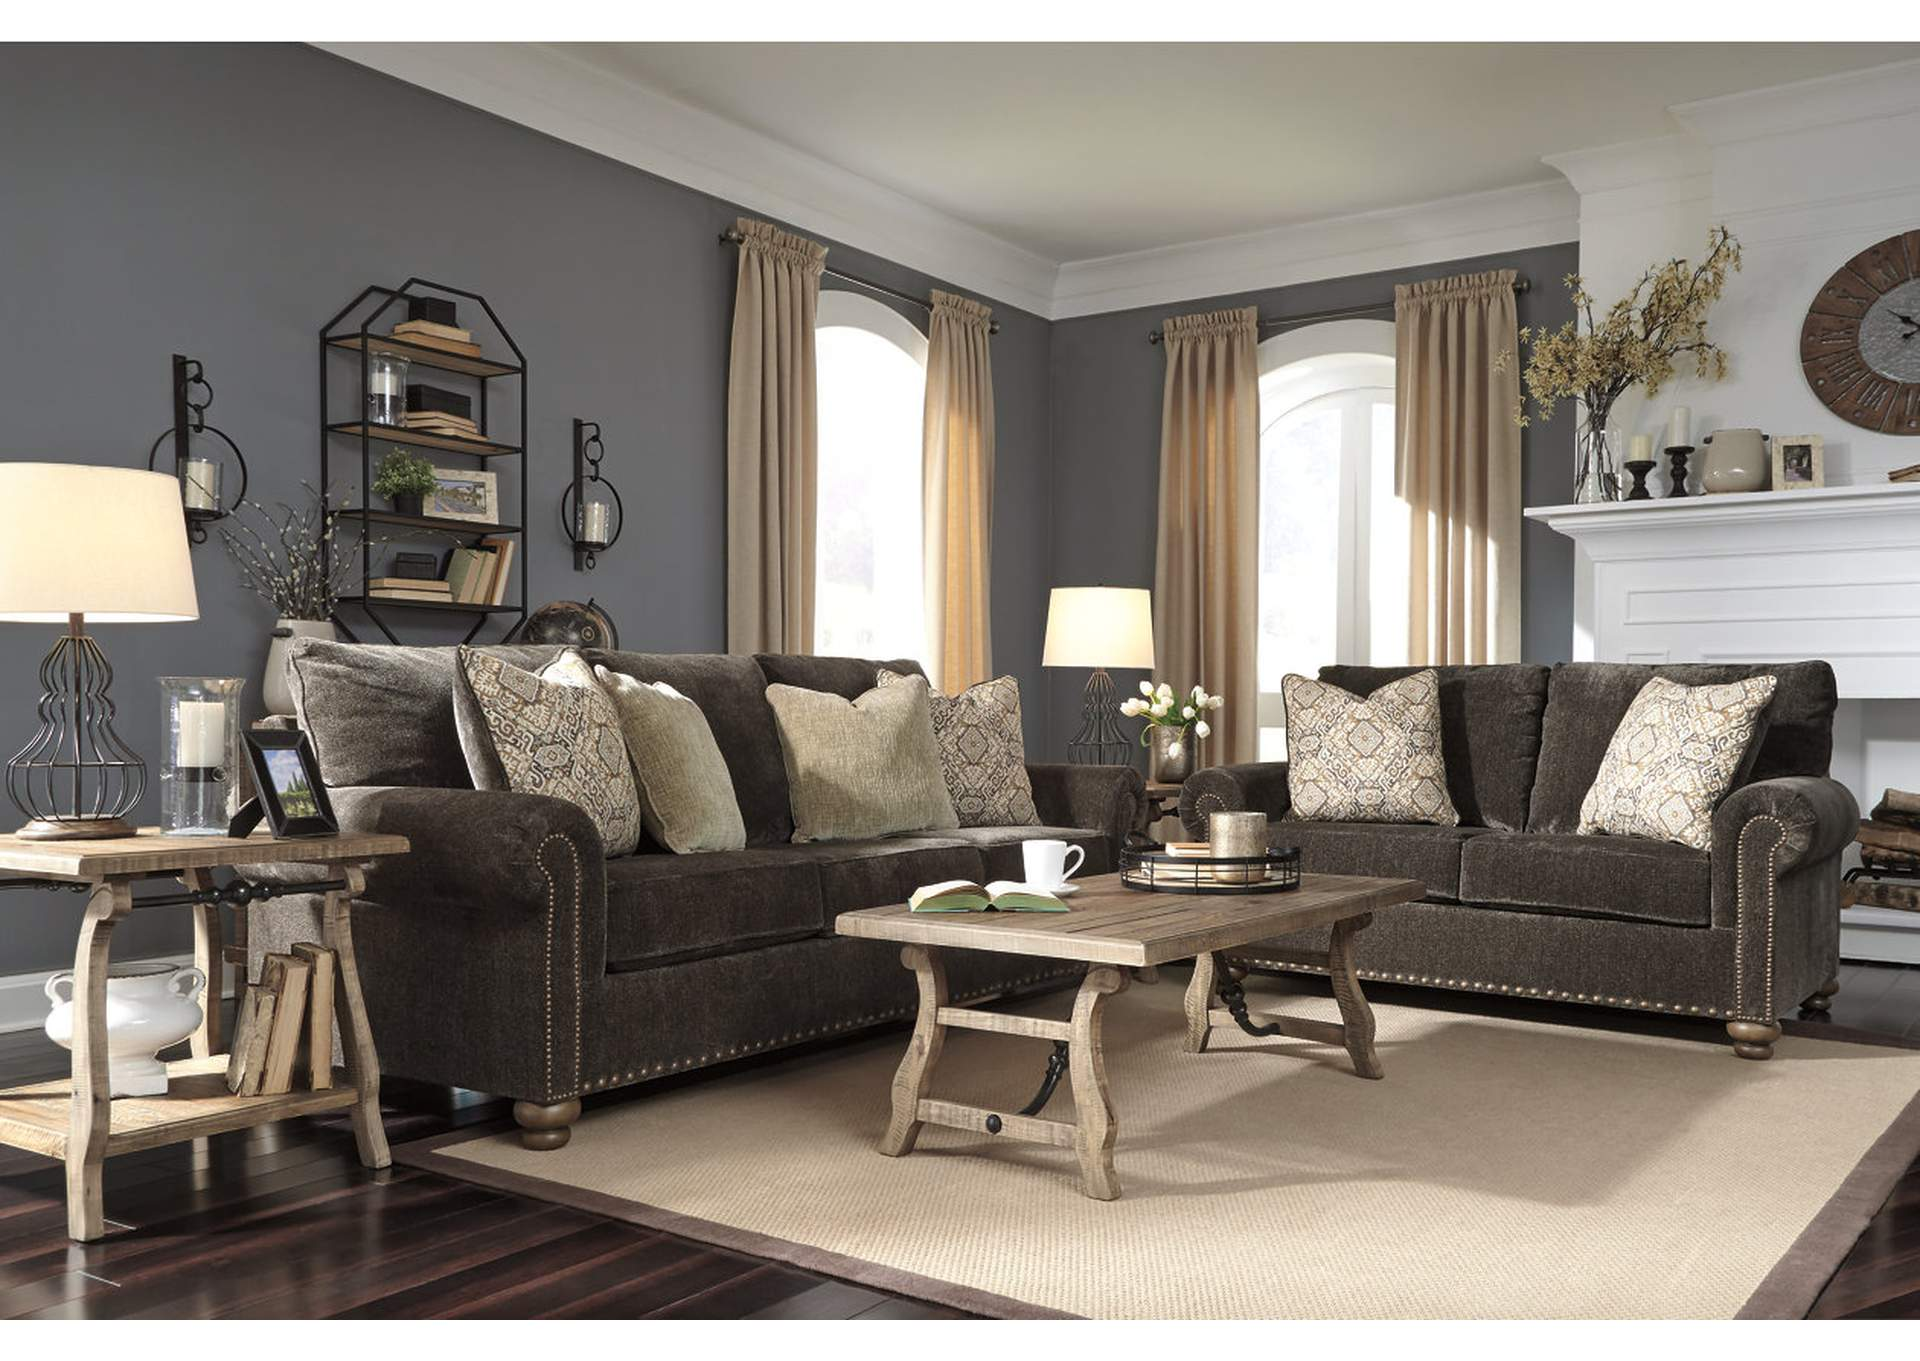 Stracelen Sable Sofa & Loveseat,Signature Design By Ashley